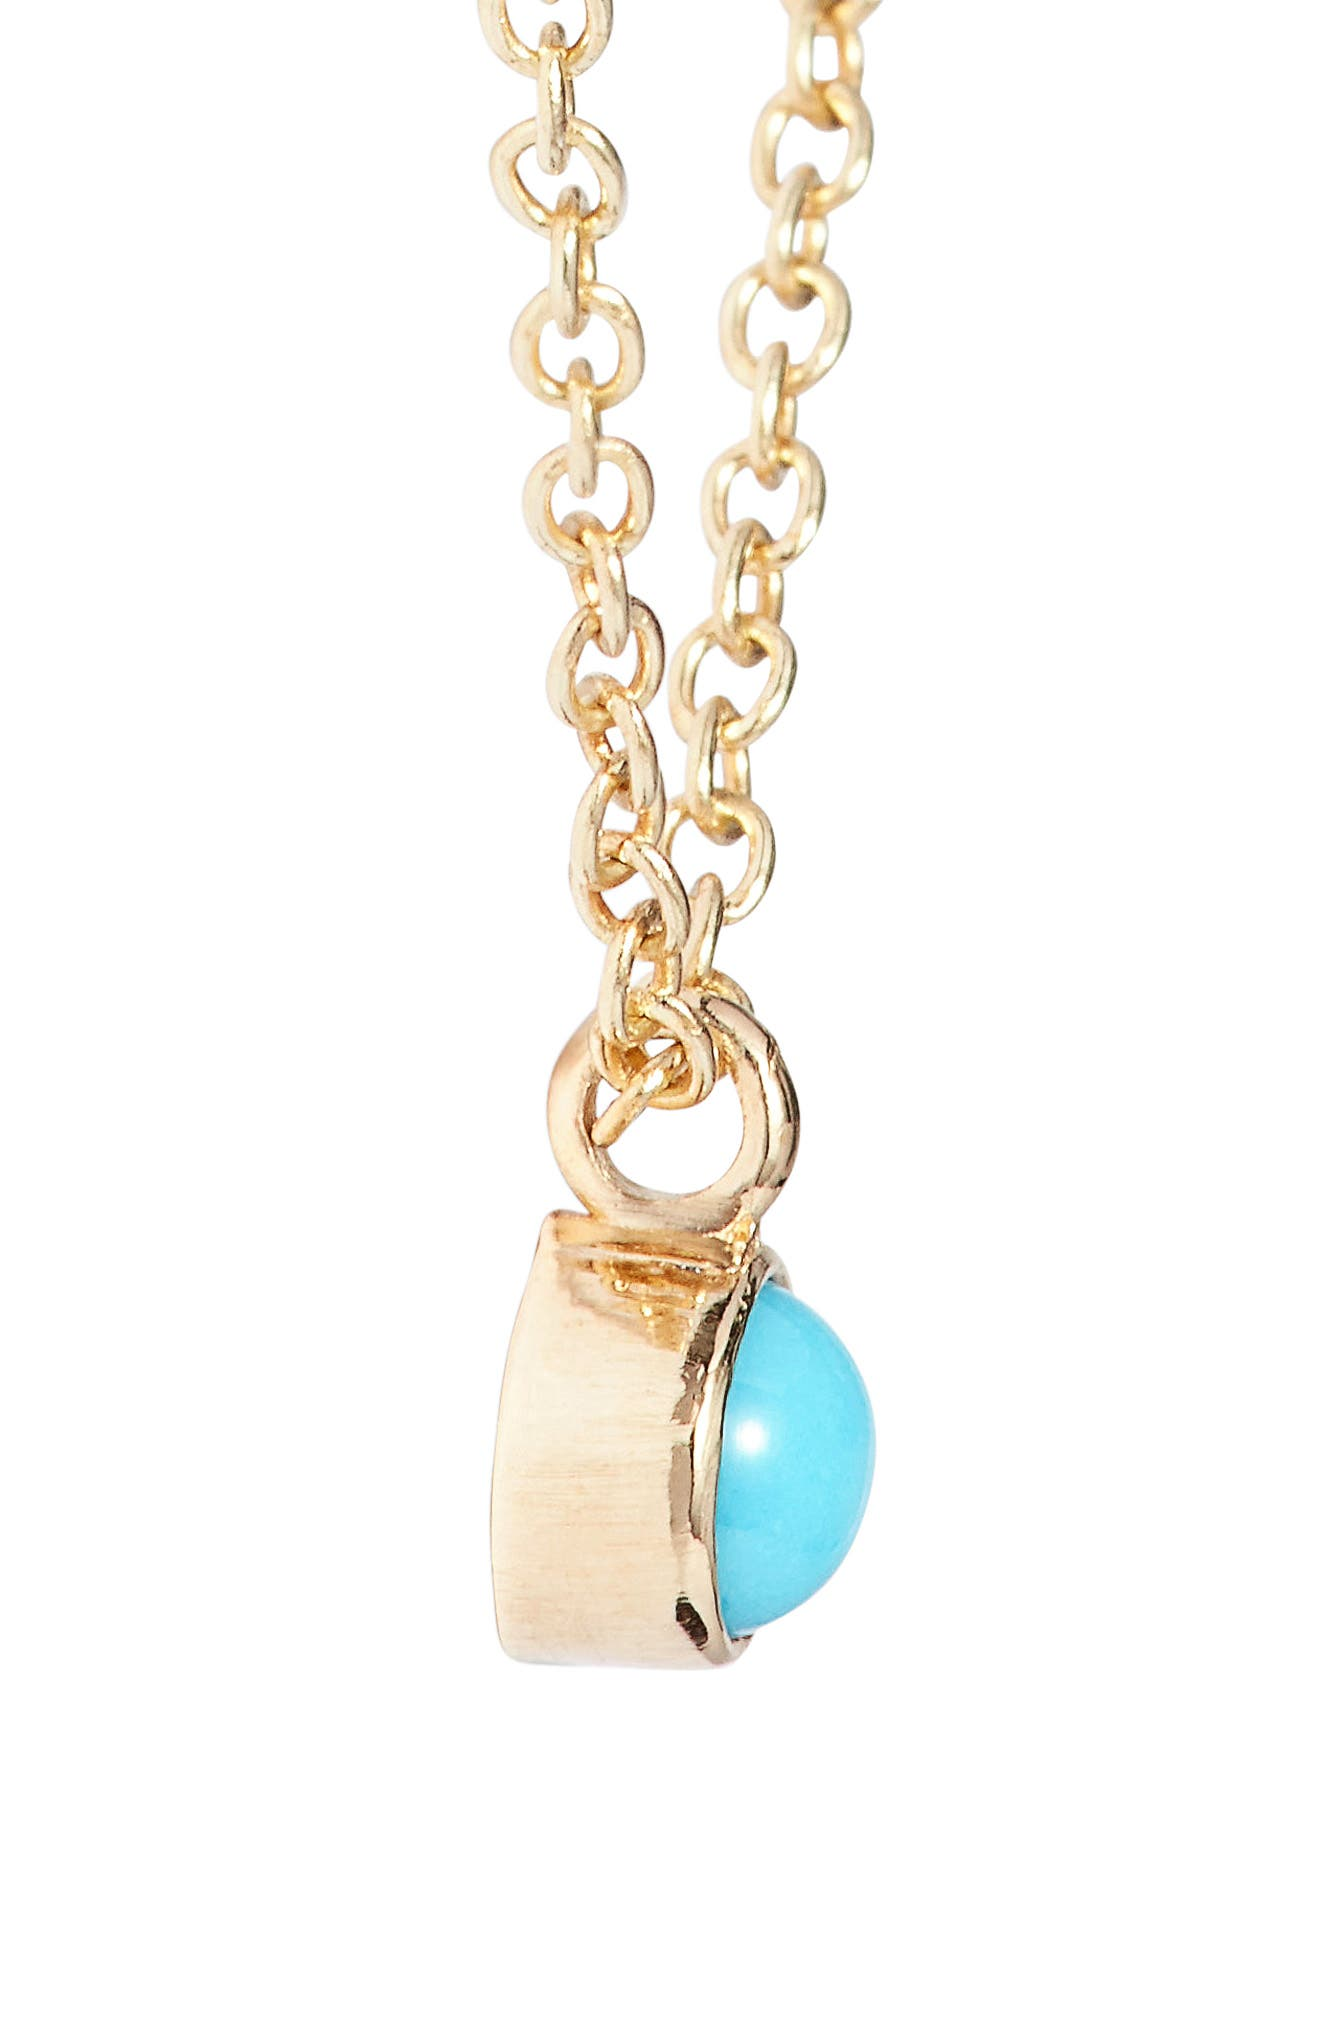 Dangling Semiprecious Stone Choker,                             Alternate thumbnail 3, color,                             Yellow Gold/ Turquoise